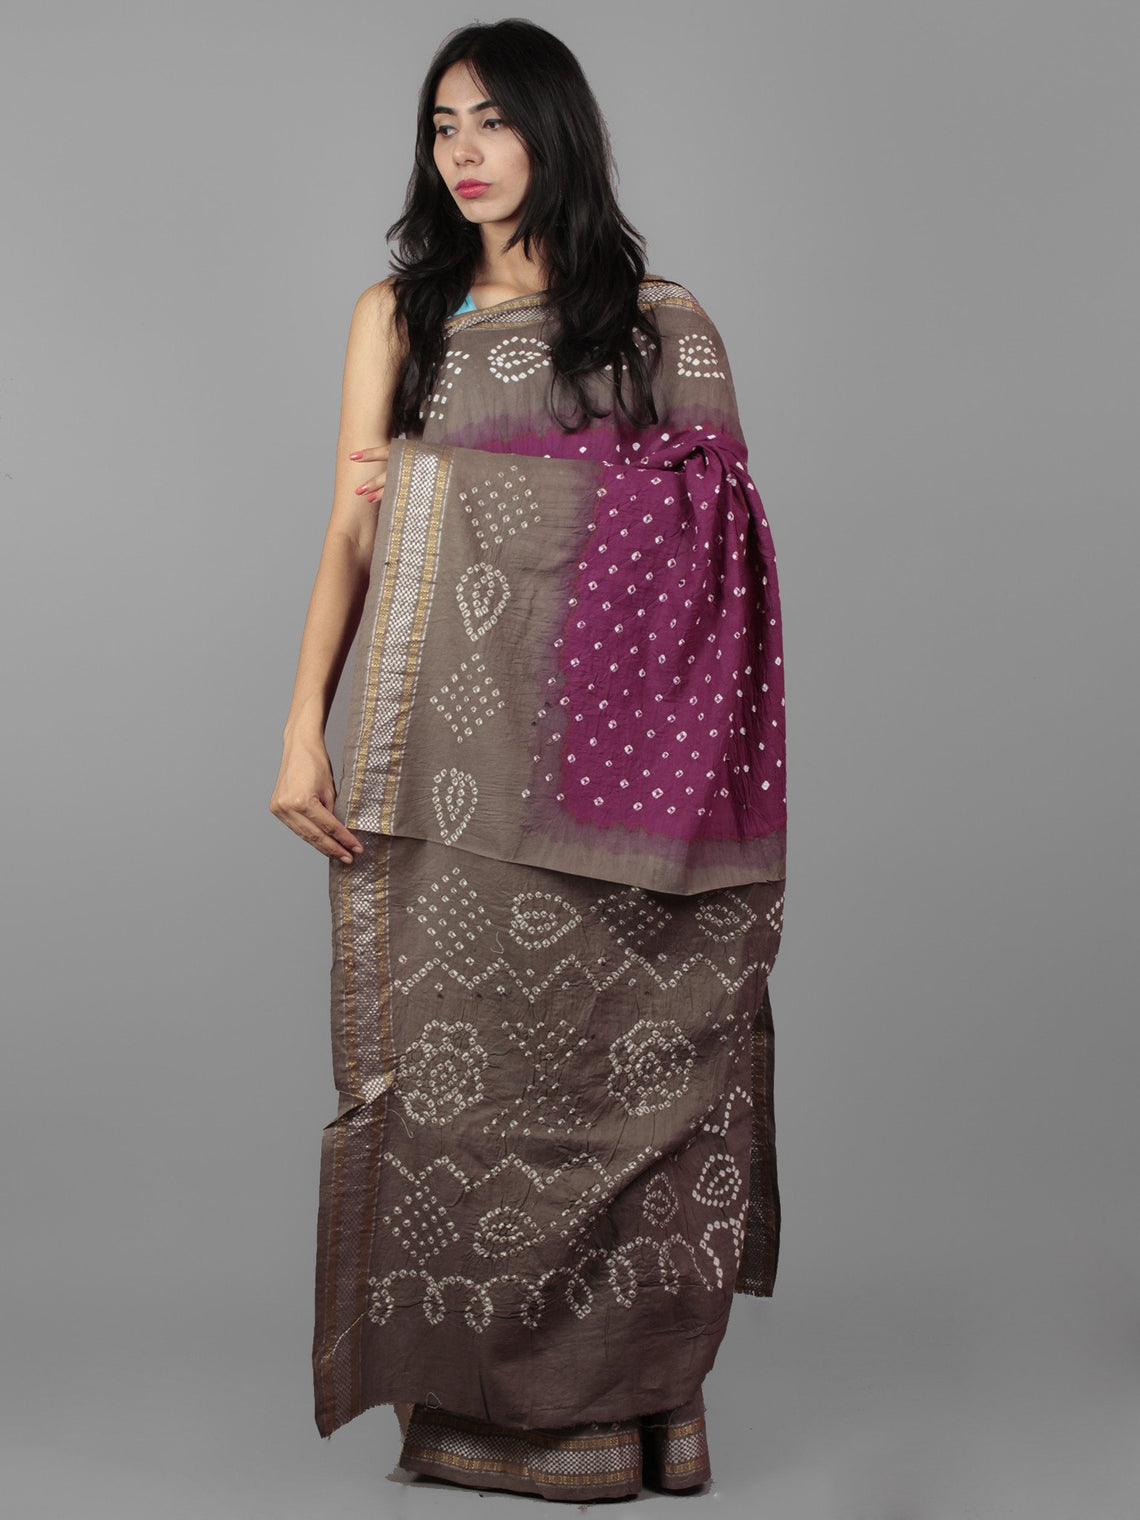 Purple Cedar Brown Ivory Hand Tie & Dye Bandhej Glace Cotton Saree With Resham Border - S031701988